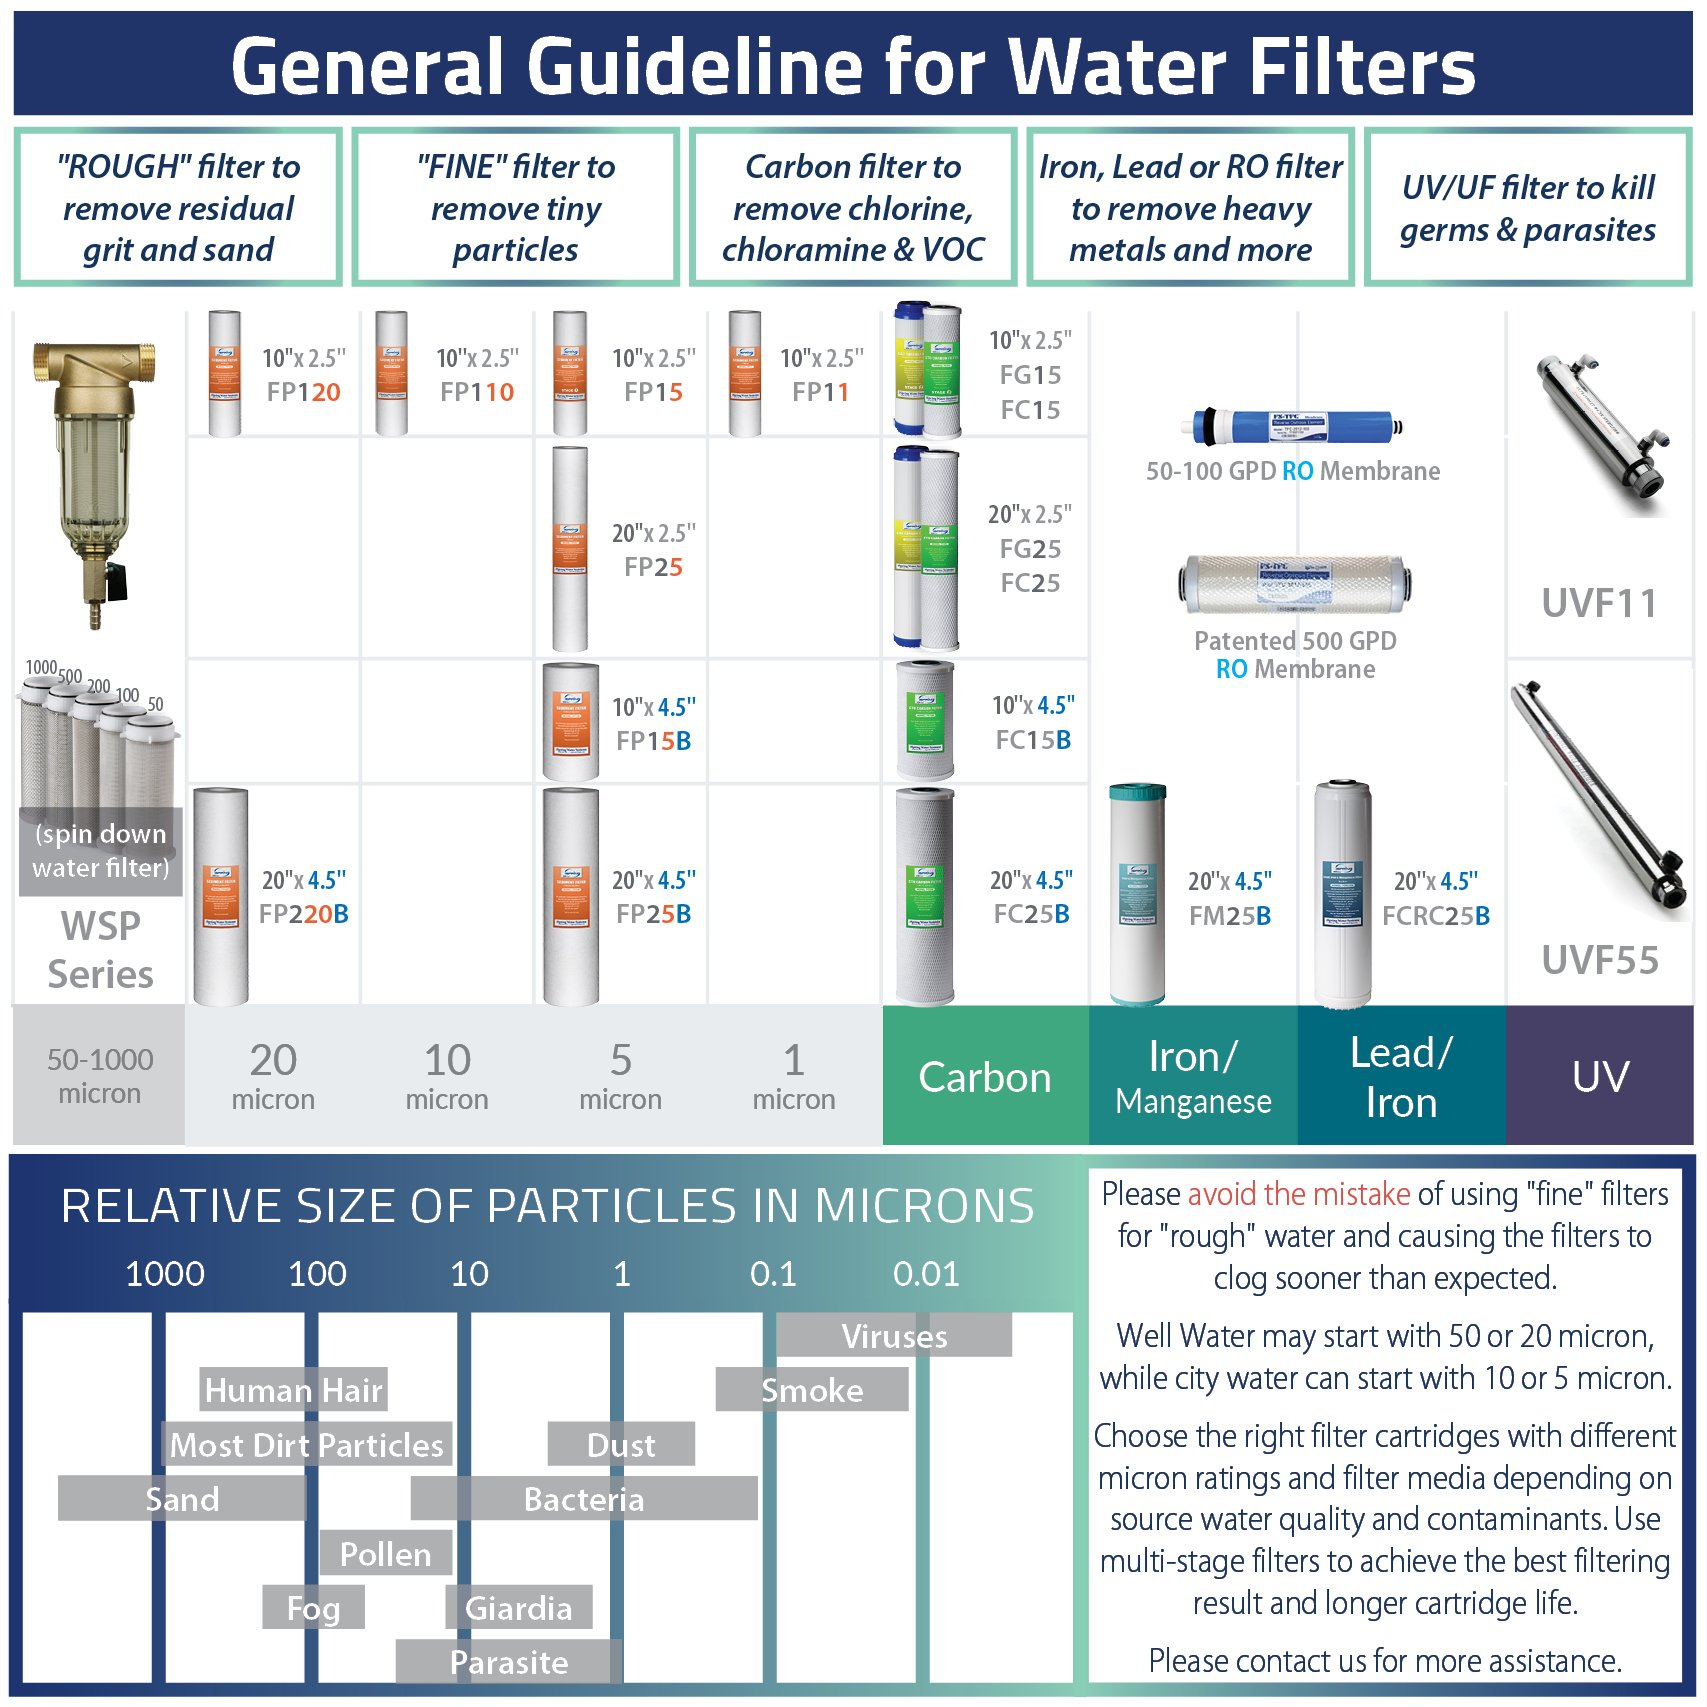 iSpring RCC7AK 6-Stage Under-Sink Reverse Osmosis Drinking Water Filtration System with Alkaline Remineralization Filter - 75 GPD by iSpring (Image #12)